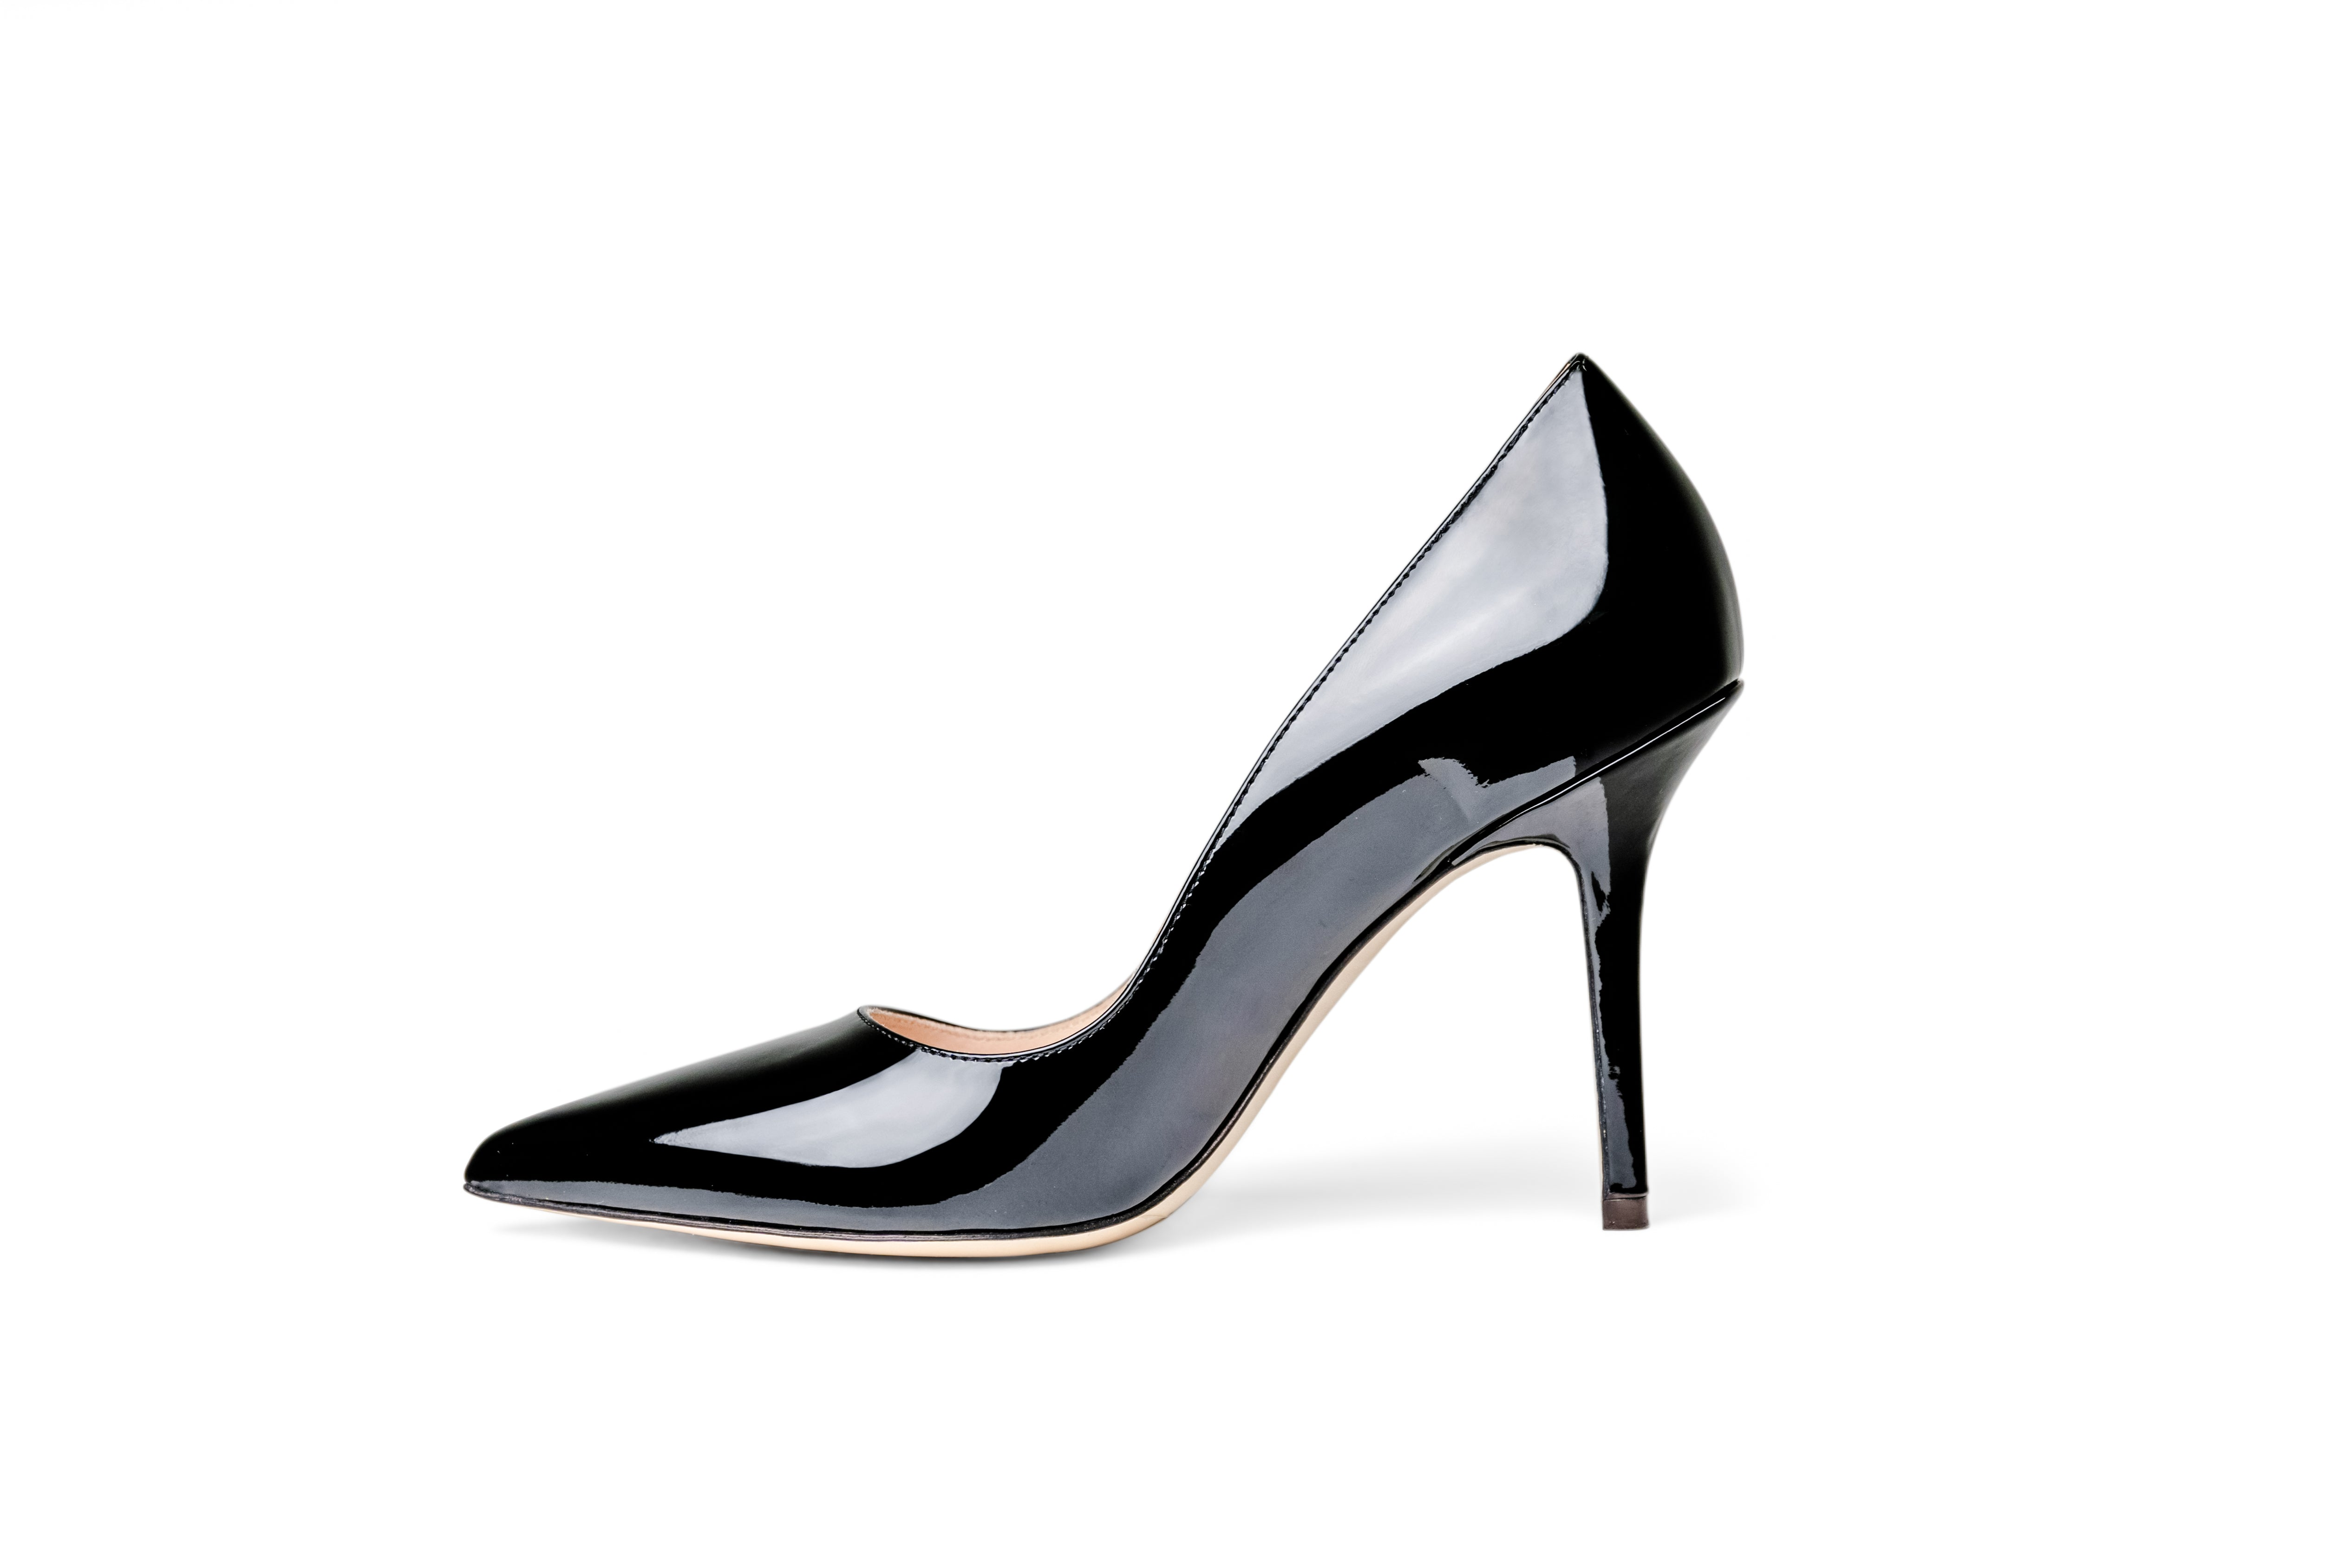 The Black Collection - 95mm Heel in Italian Patent Leather